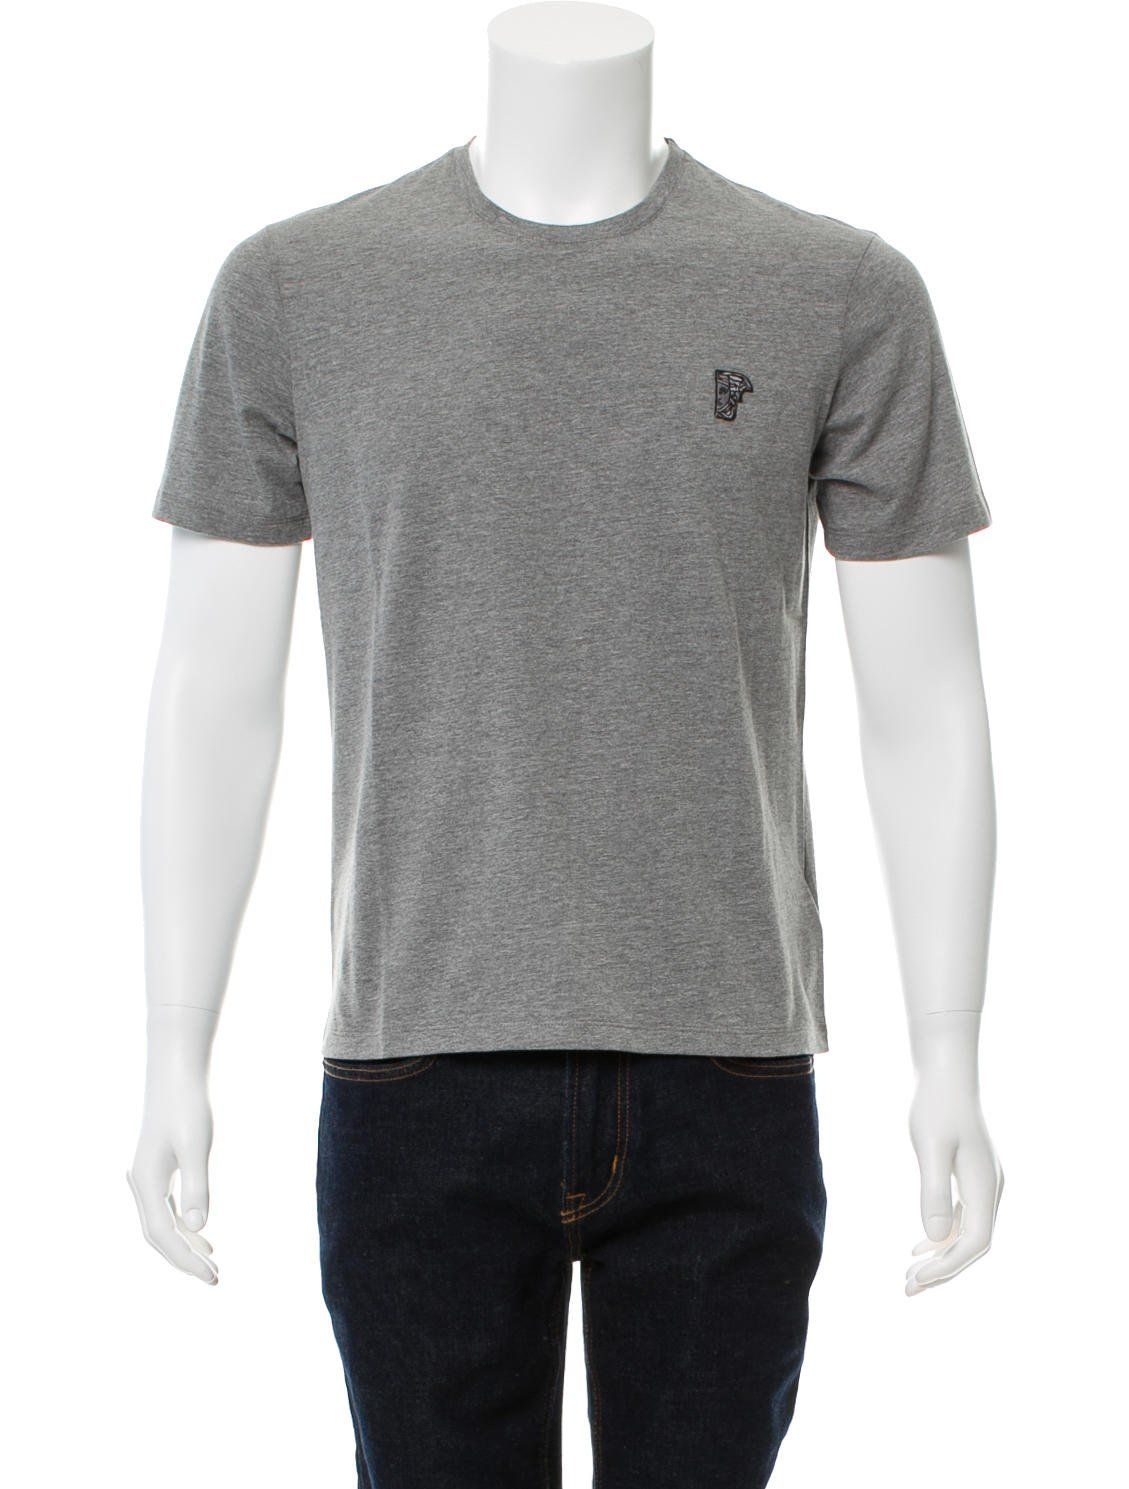 a55db064f68 Men s grey Versace Collection embroidered Medusa T-shirt with scoop neck  and short sleeves. Includes tags.versace-collection Collection embroidered  Medusa